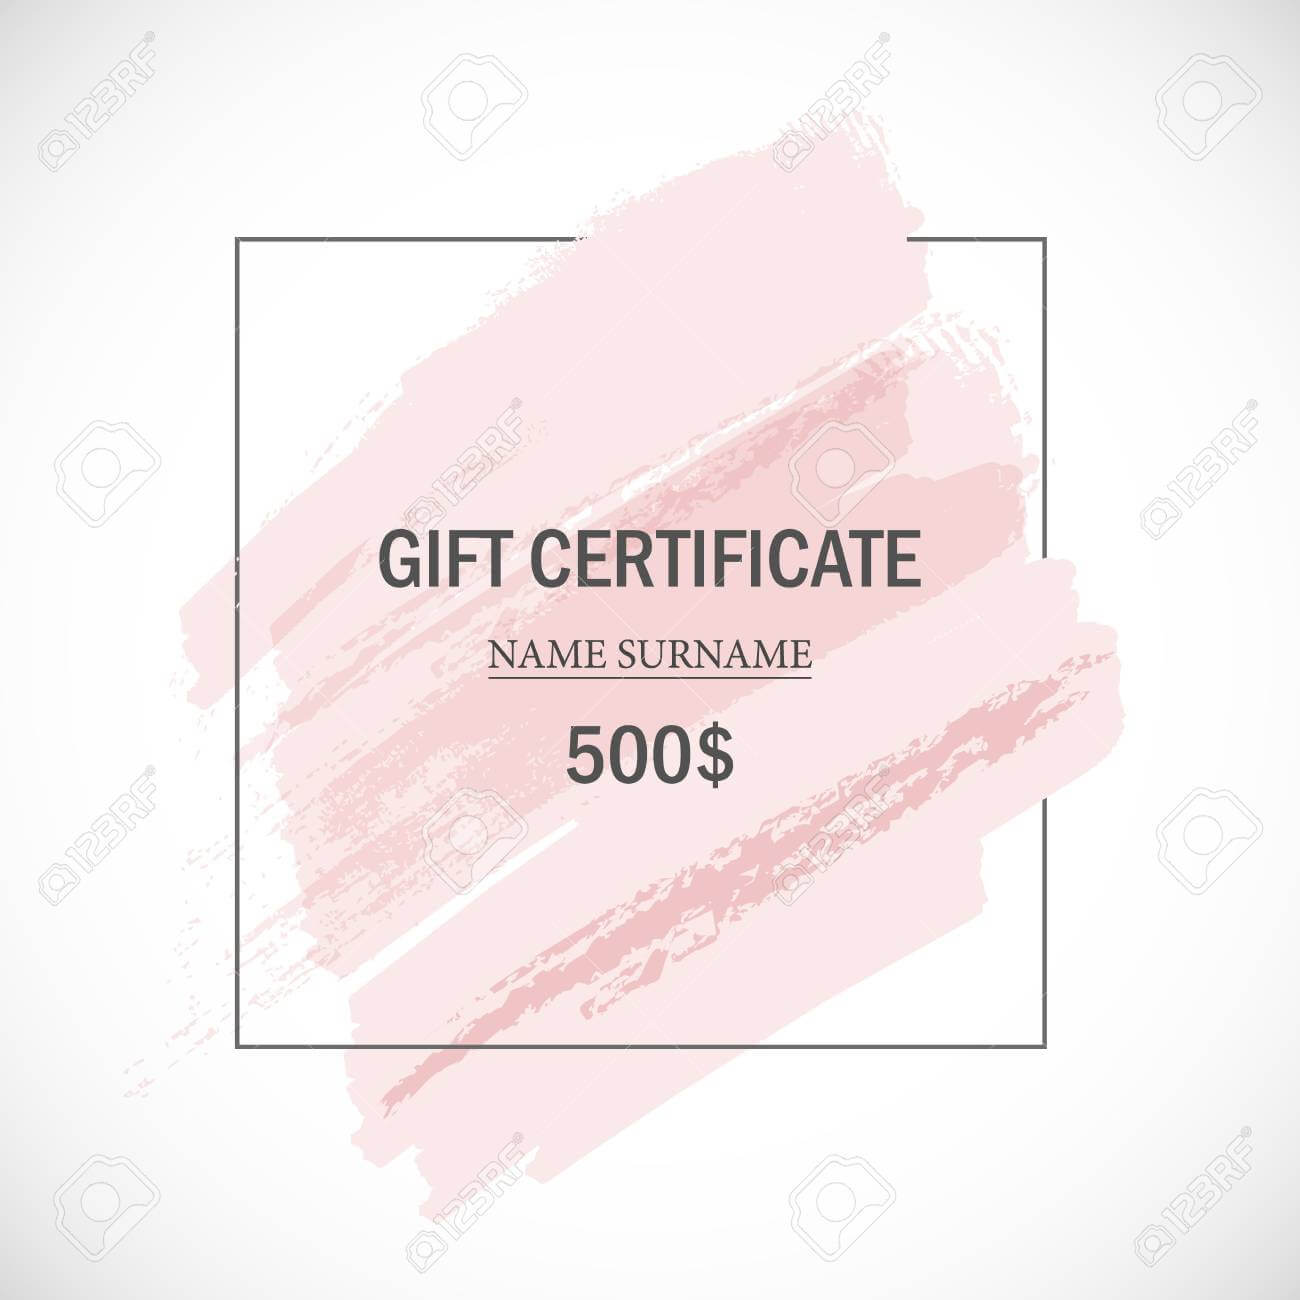 Pink Gift Certificate Template. For Pink Gift Certificate Template